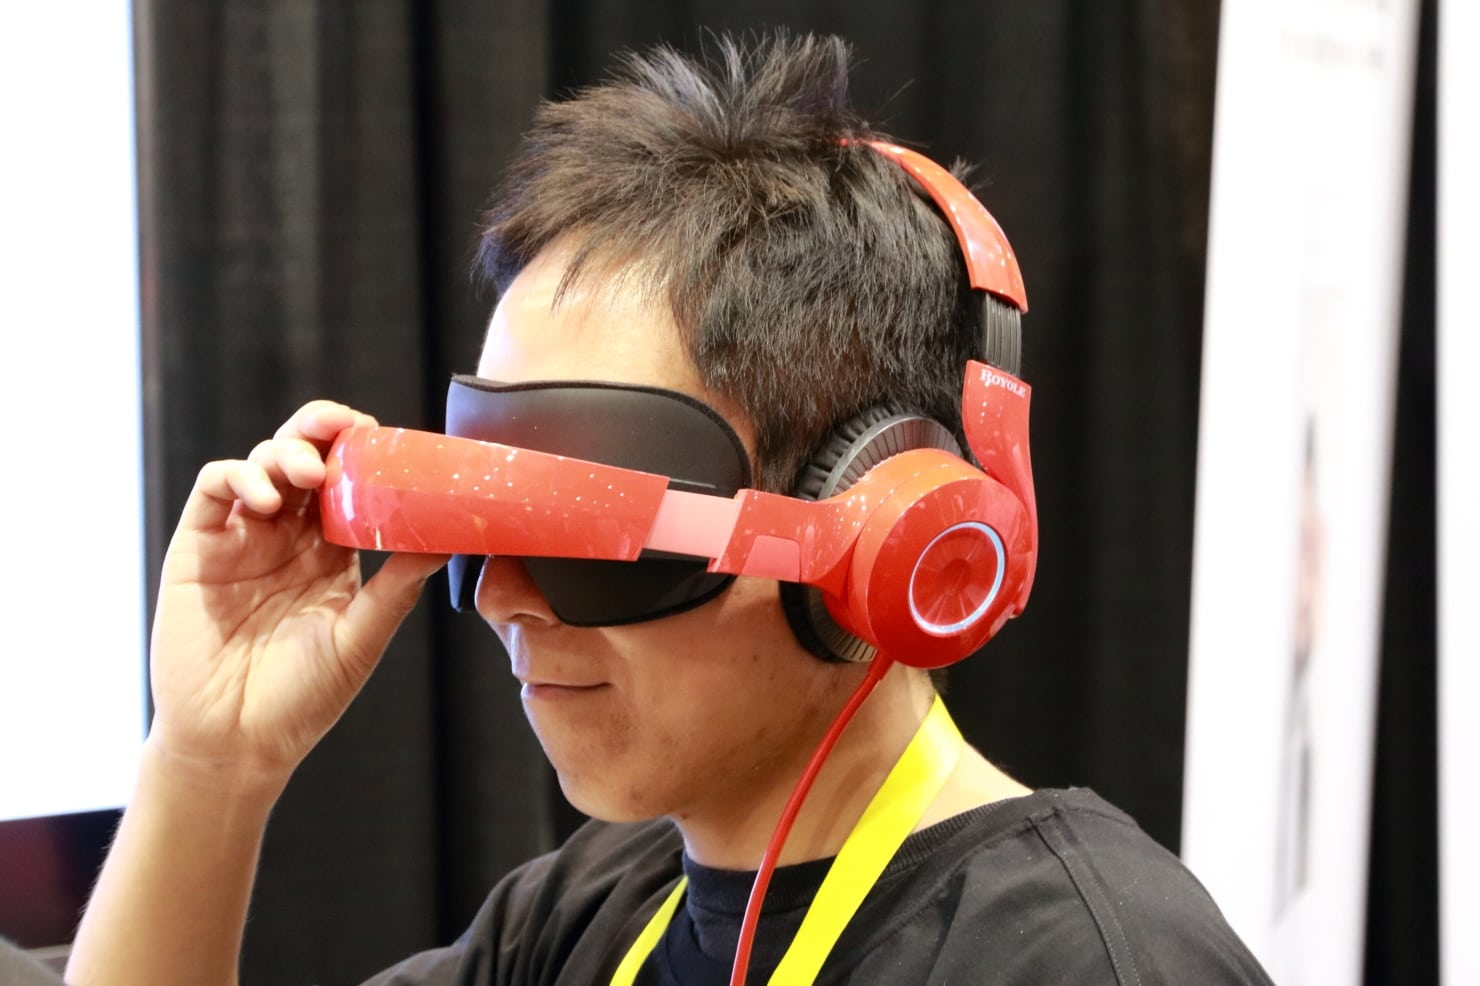 Not Quite VR Mobile Theater